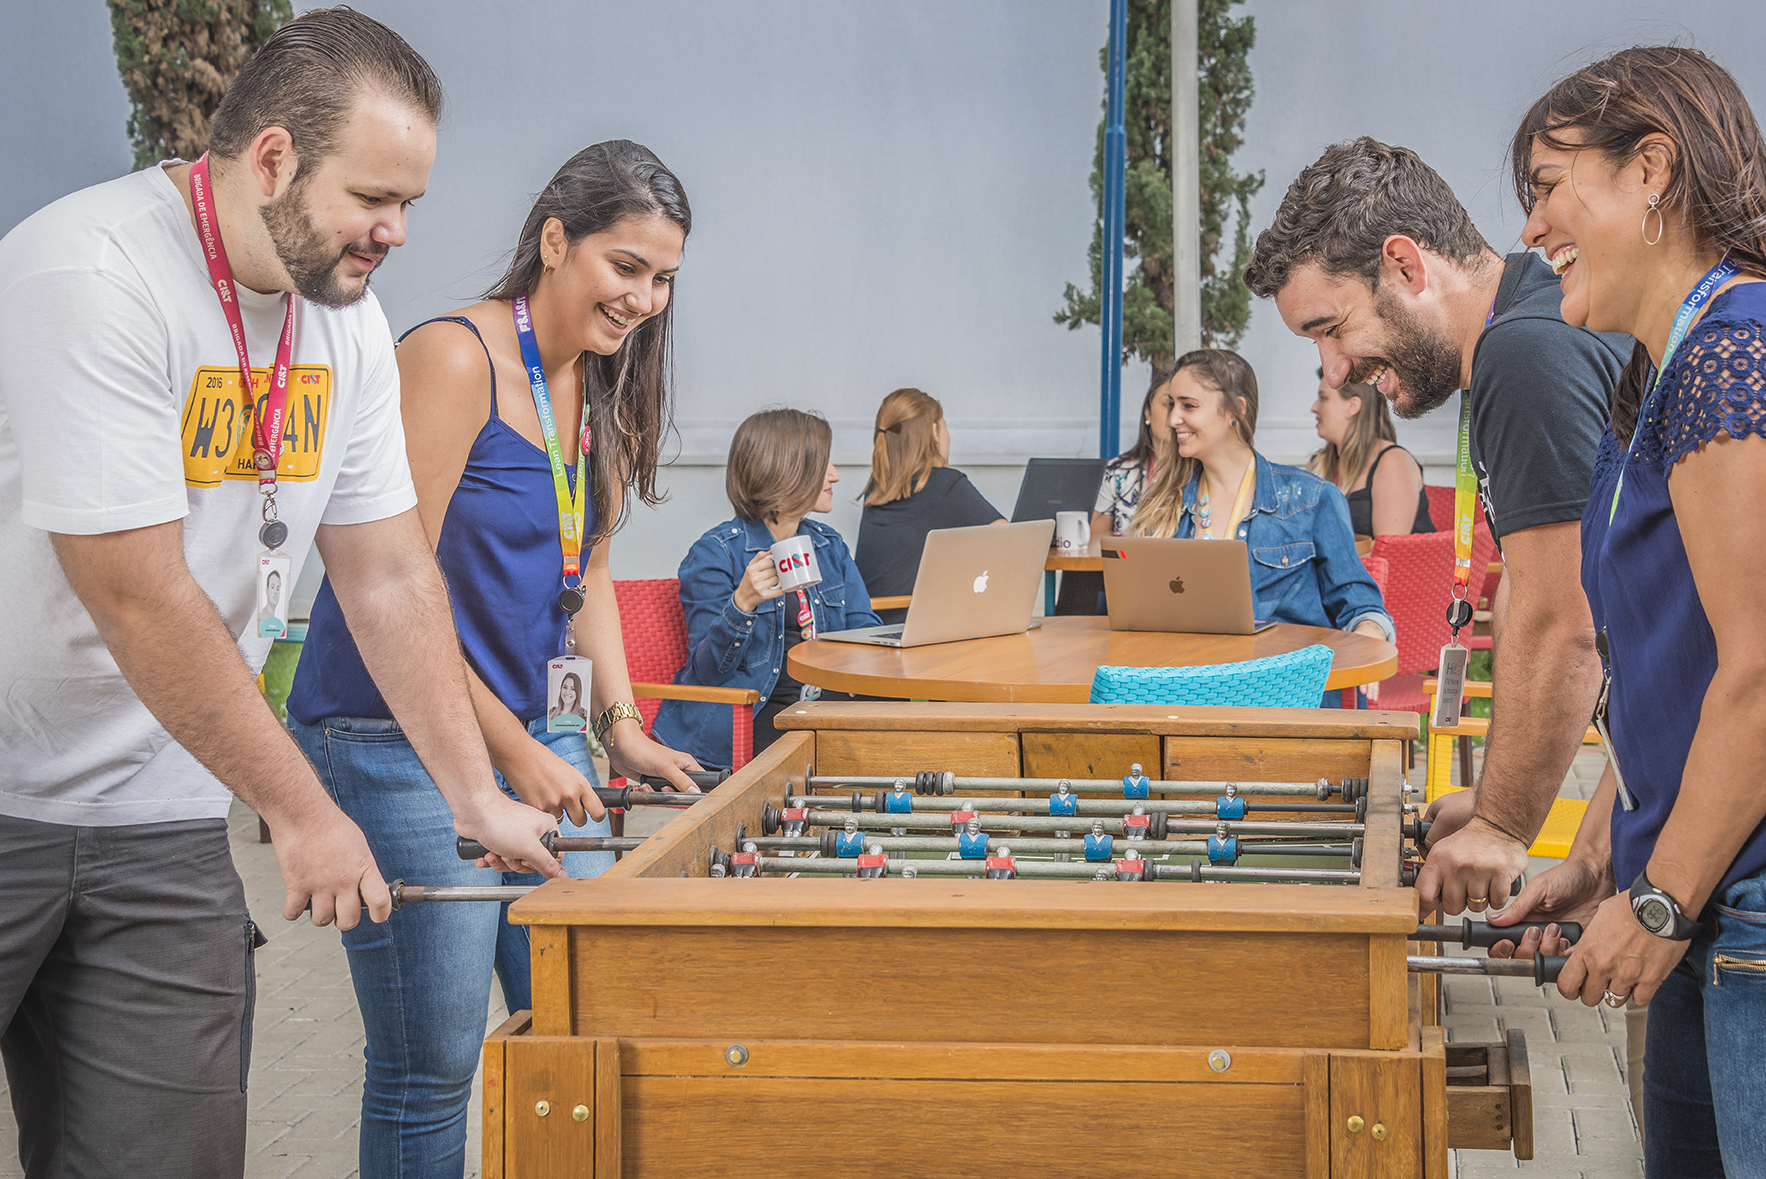 CI&T employees playing foosball while others are sitting on tables working in the back of the room